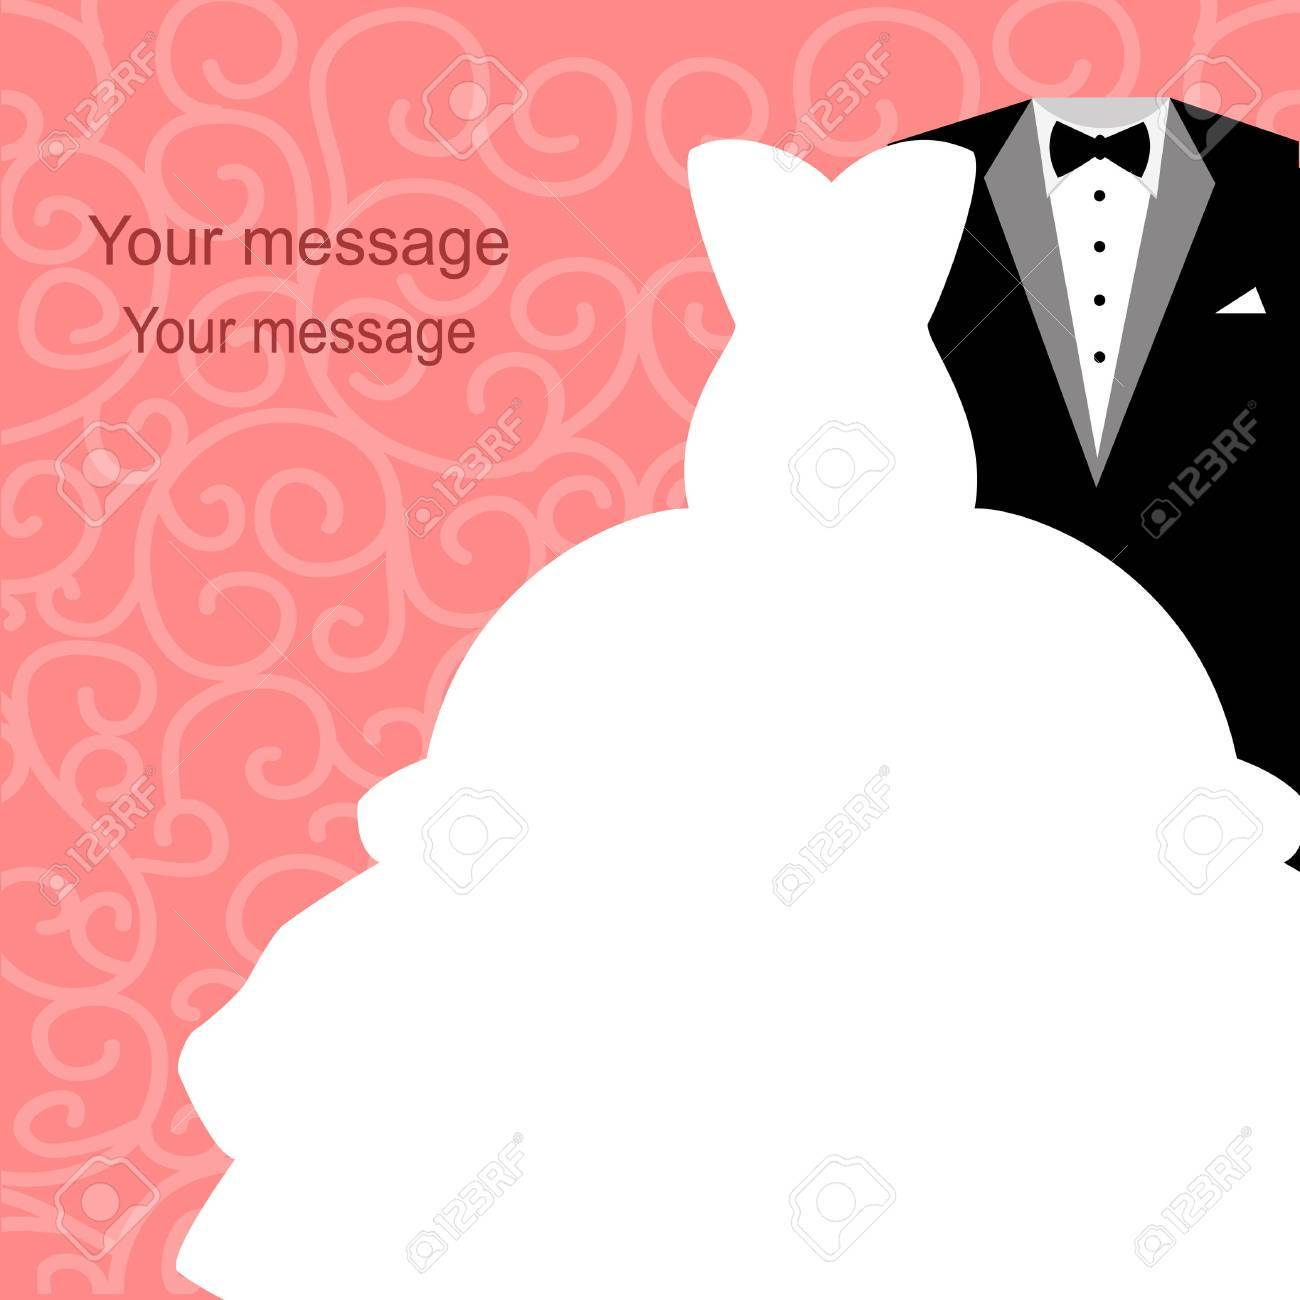 Wedding Invitation With A Tuxedo And Dress On An Abstract Background